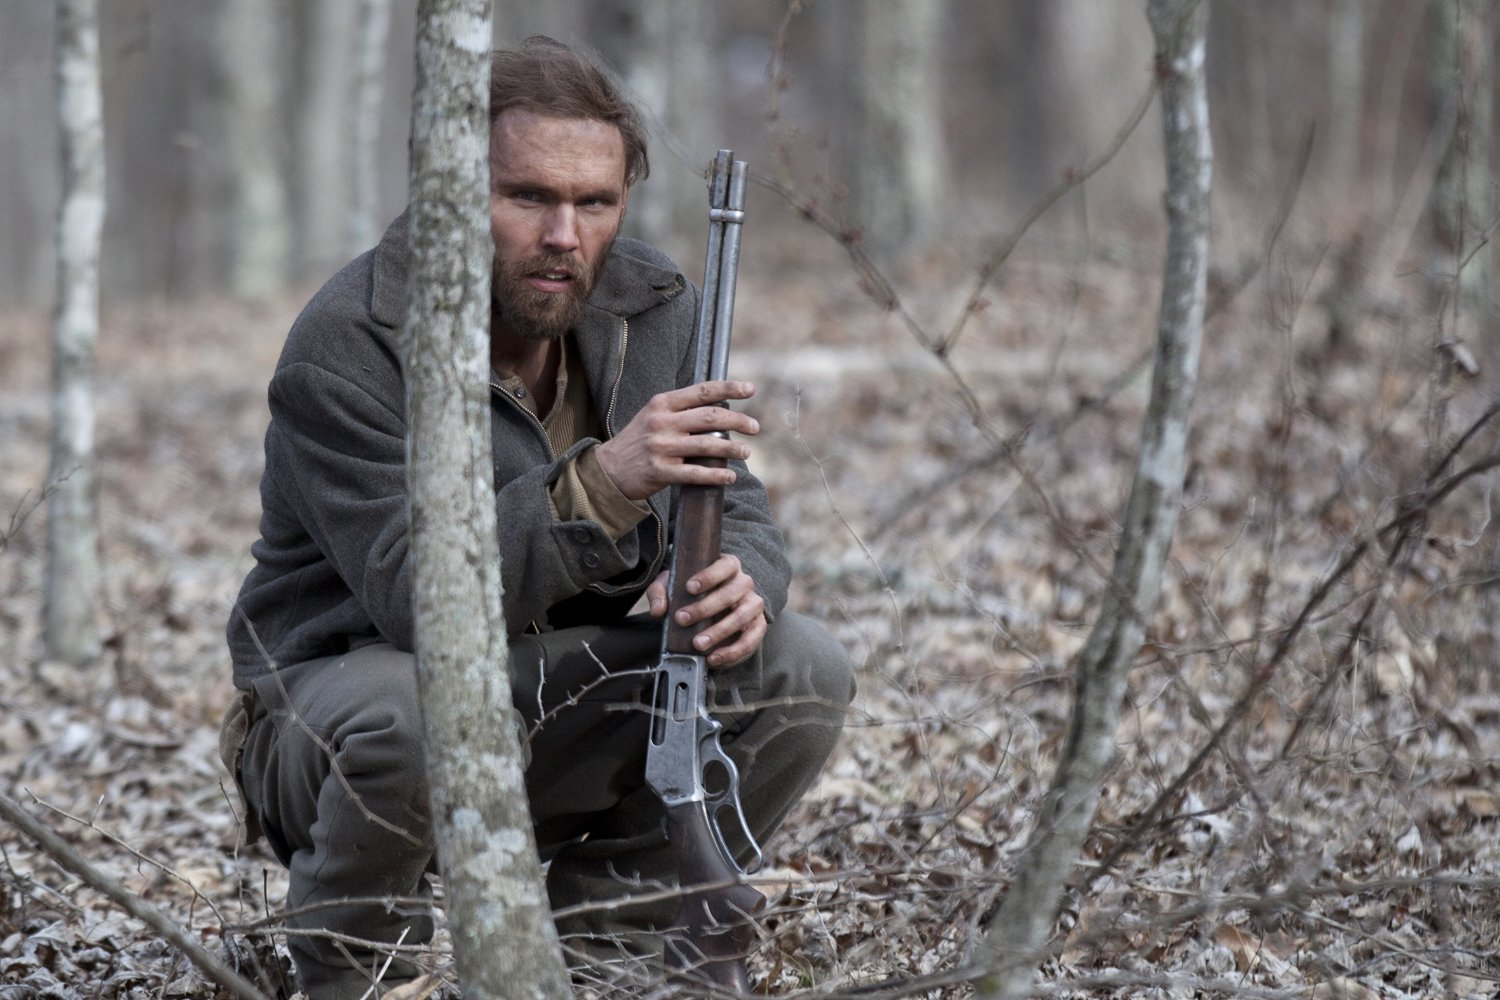 Lester (Scott Haze), a marginalised figure living in the wild in Child of God (2013)